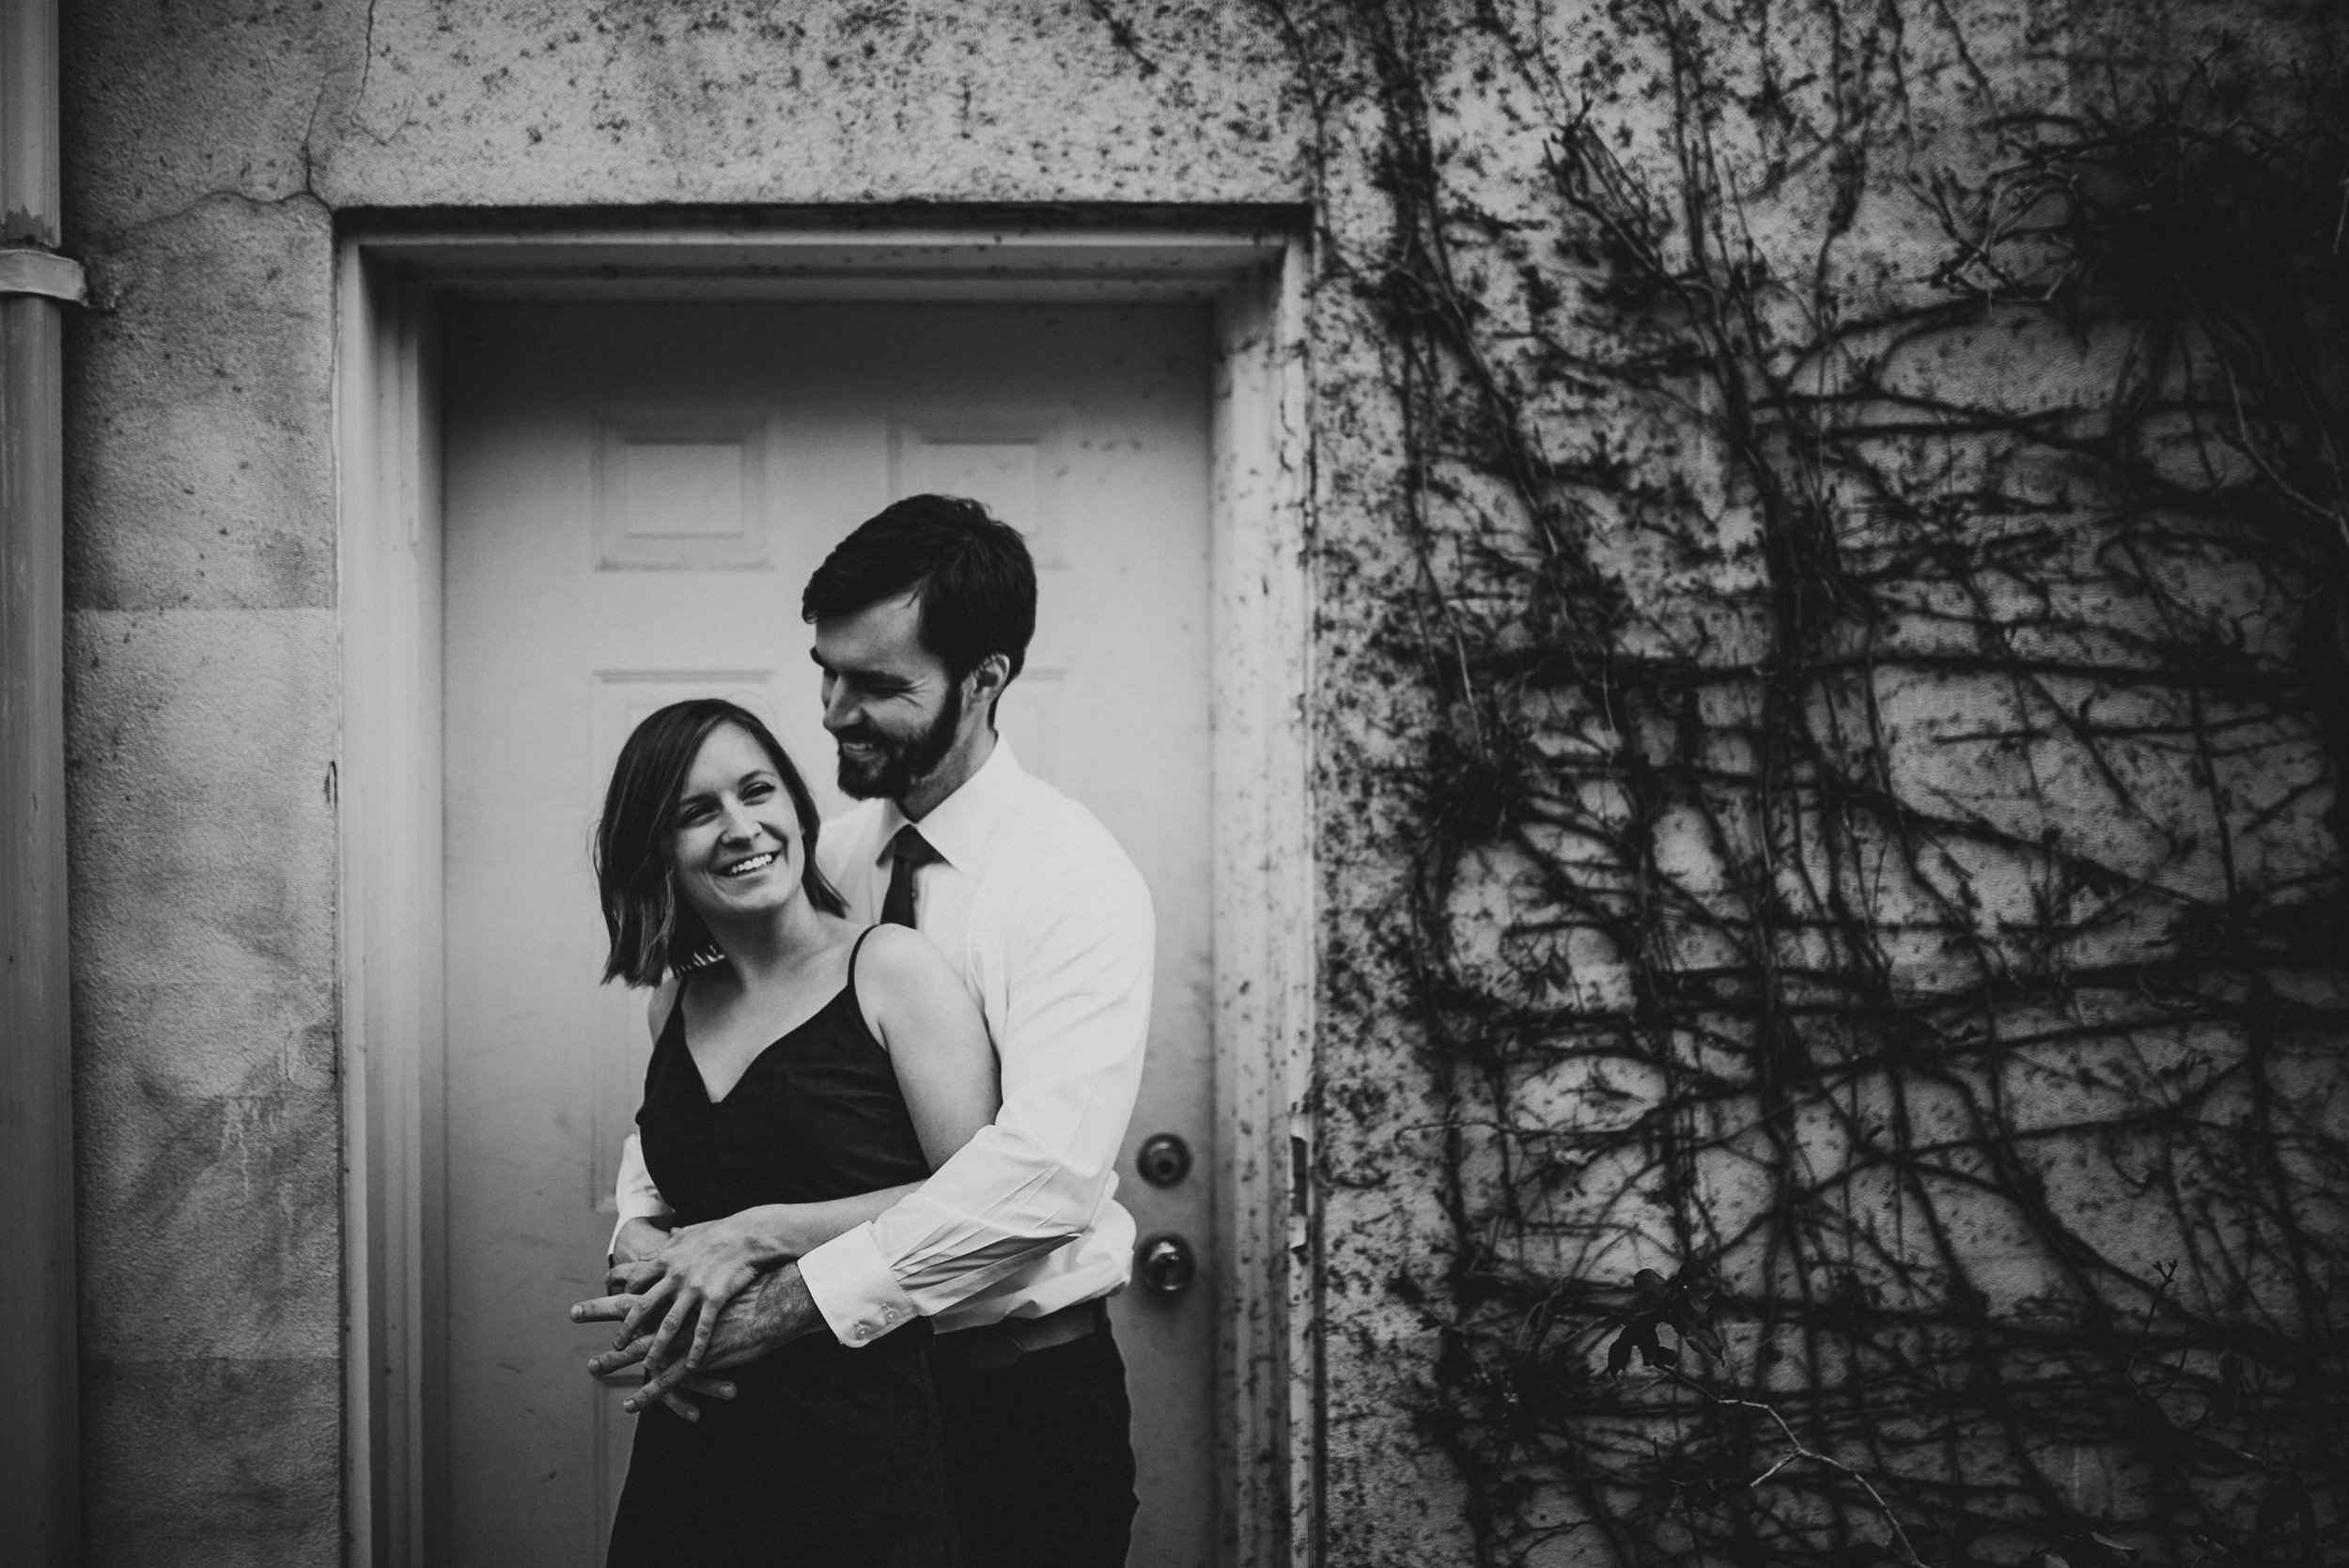 Capitol Stone Yard Engagement Session Photographer Mantas Kubilinskas-17.jpg